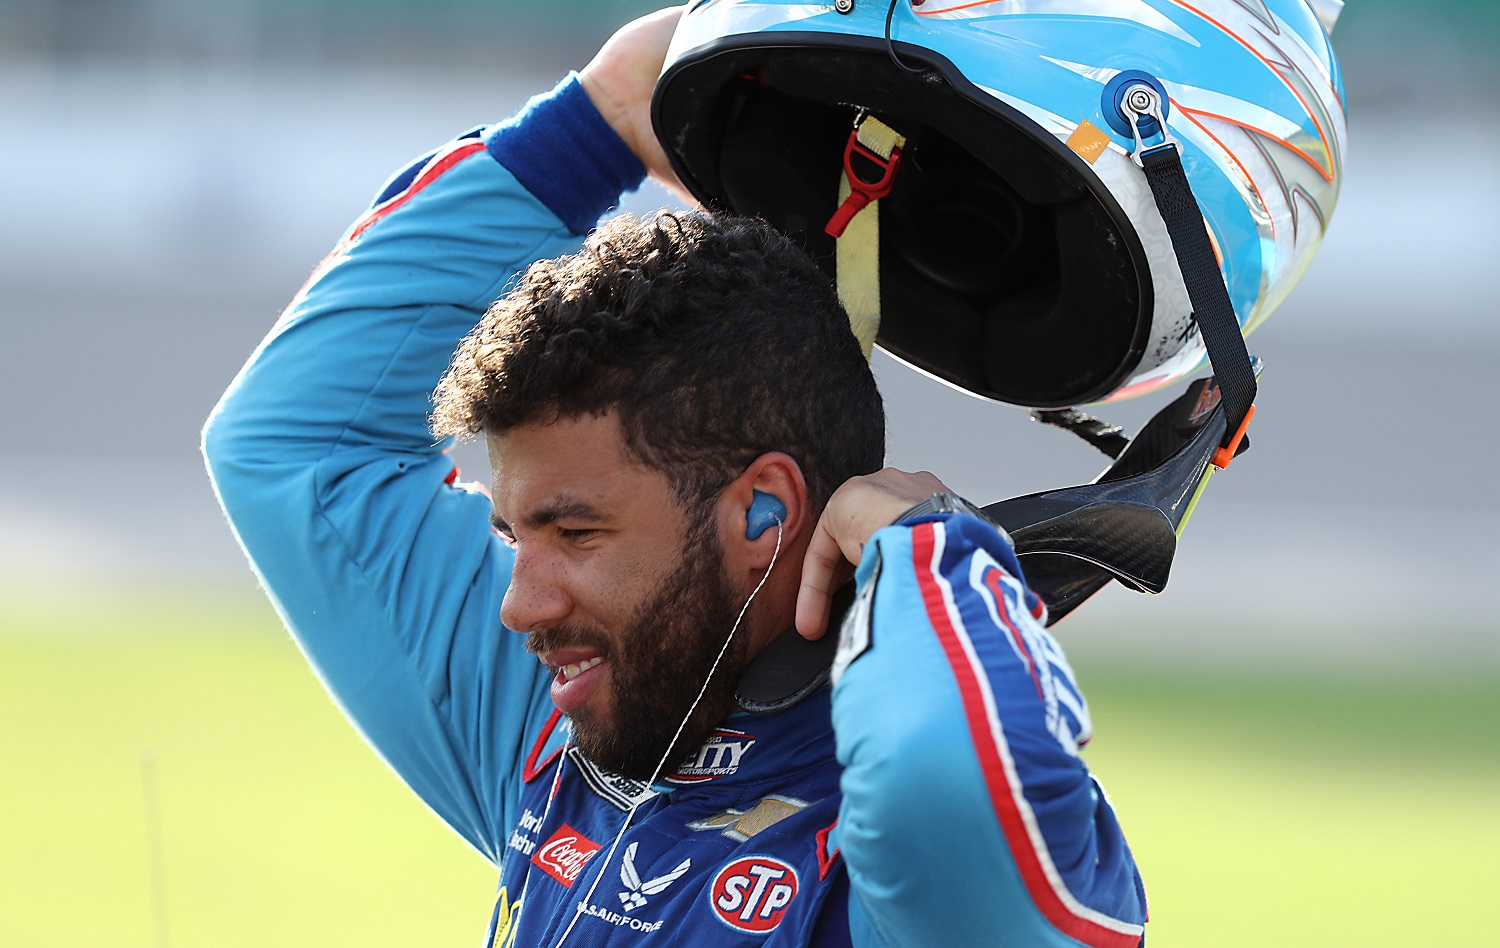 Bubba Wallace has moved to the 23XI Racing team owner by Michael Jordan and Denny Hamlin for the 2021 NASCAR season